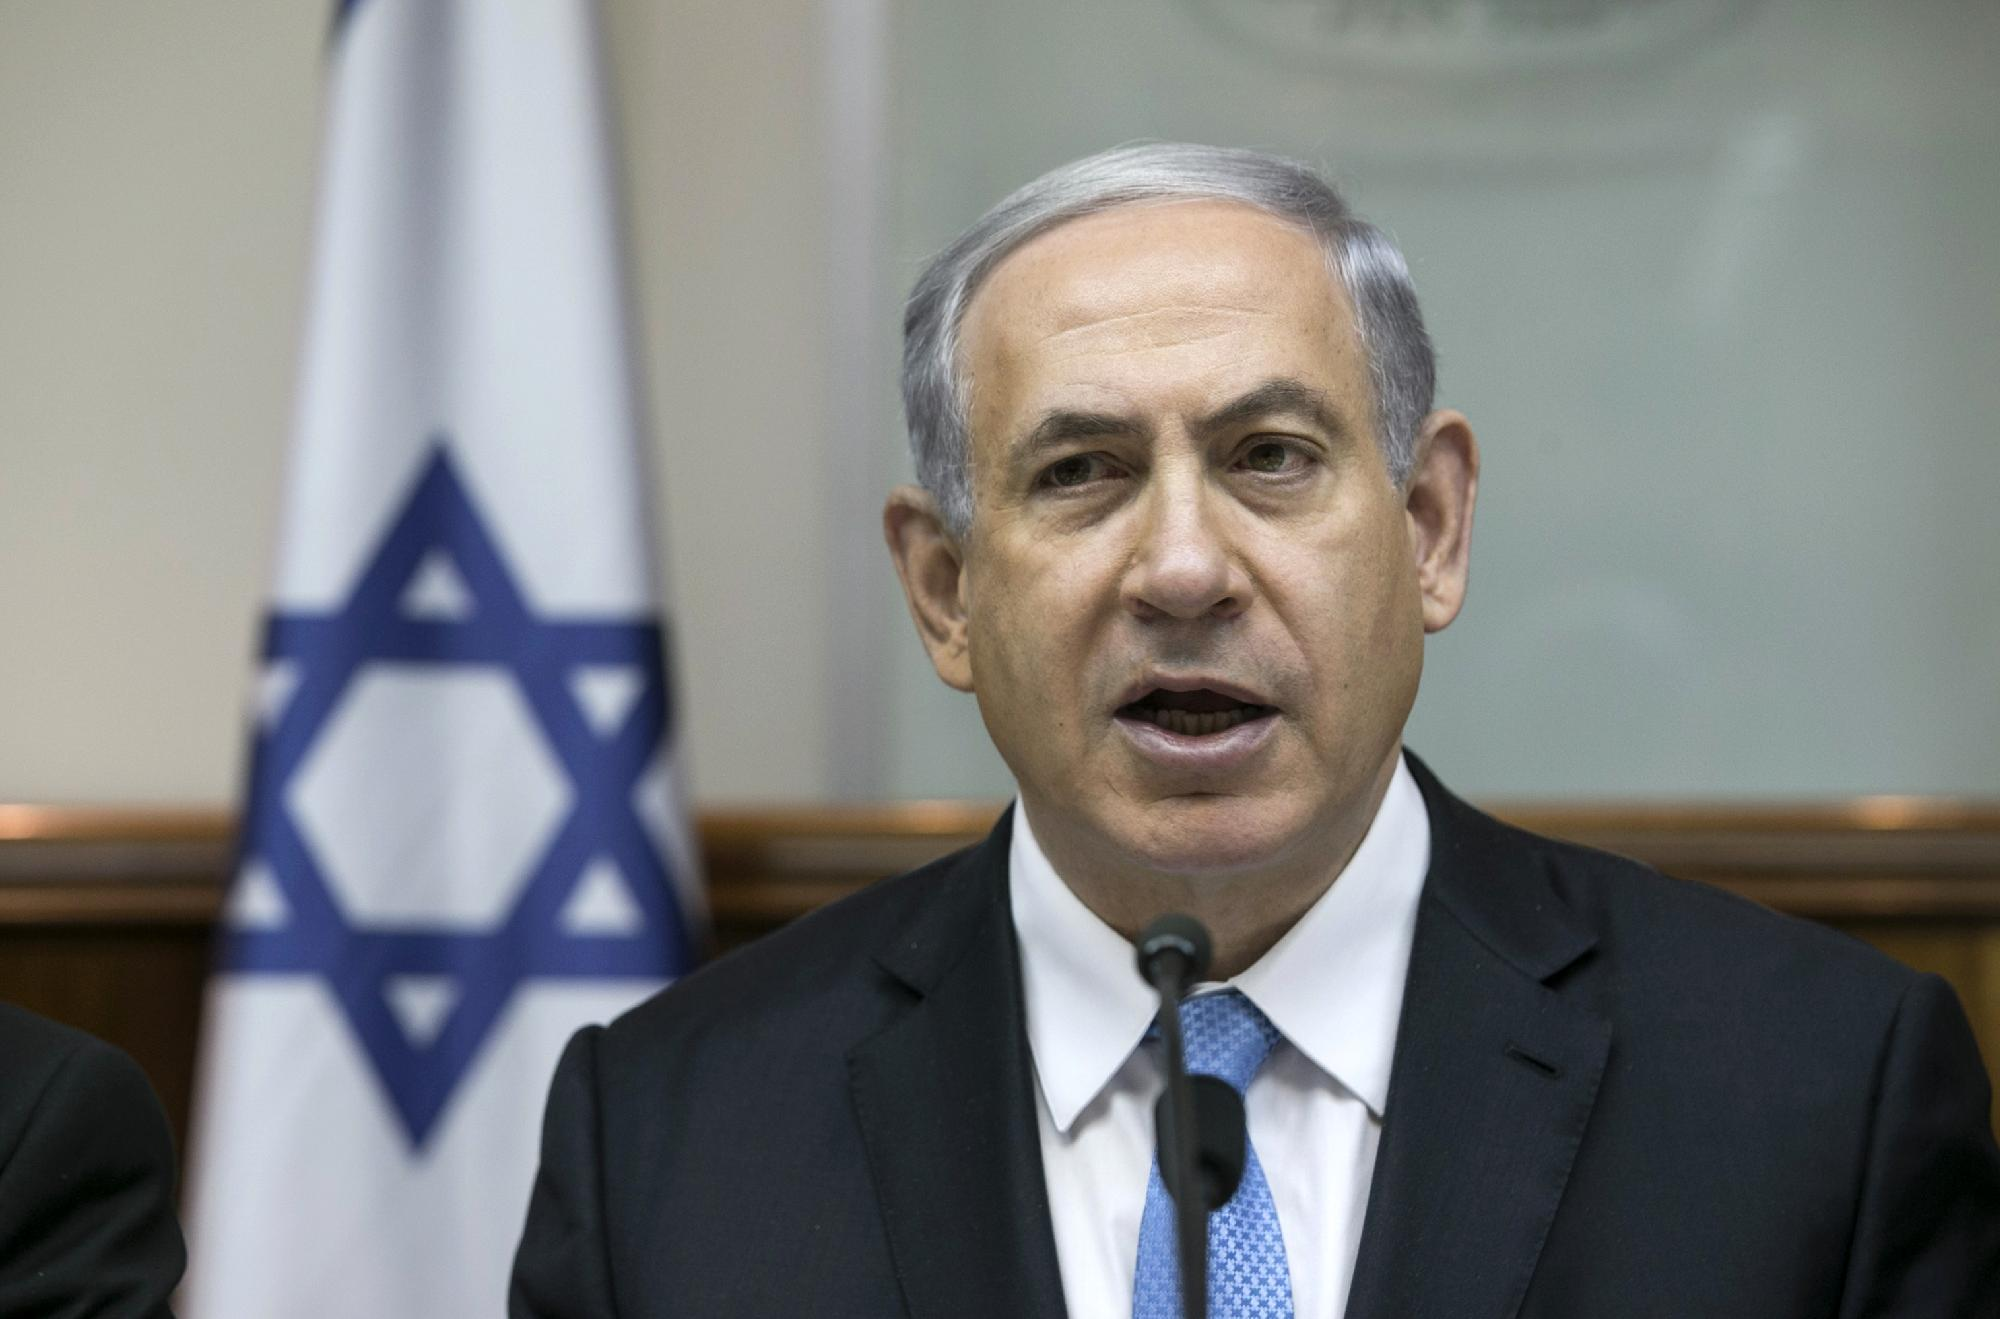 Netanyahu defends planned Congress speech as anti-Iran strategy